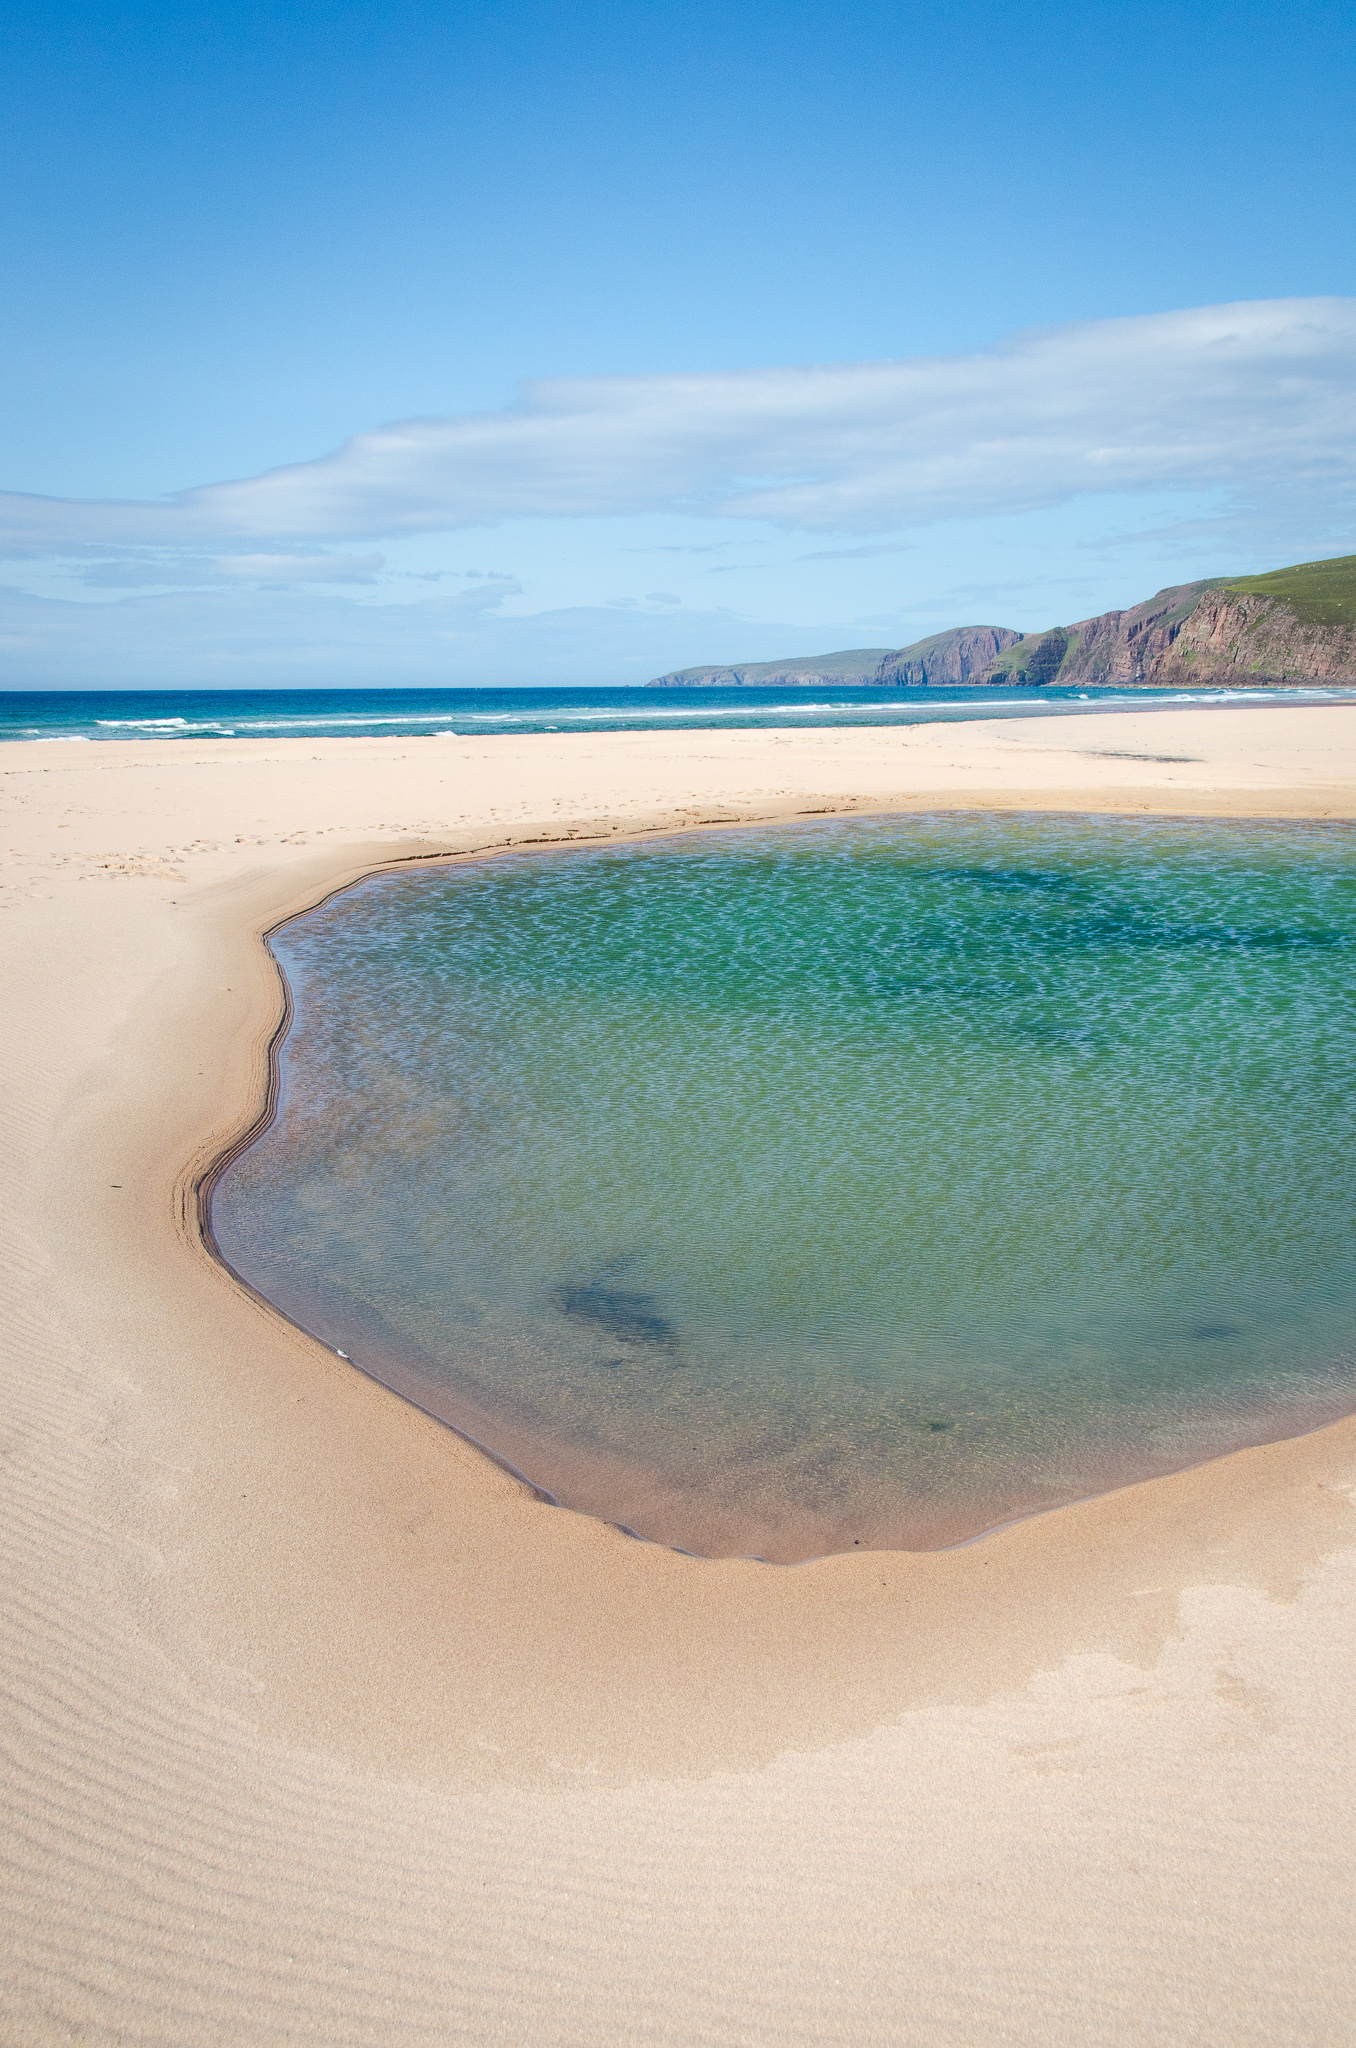 Saltwater pools on the beach